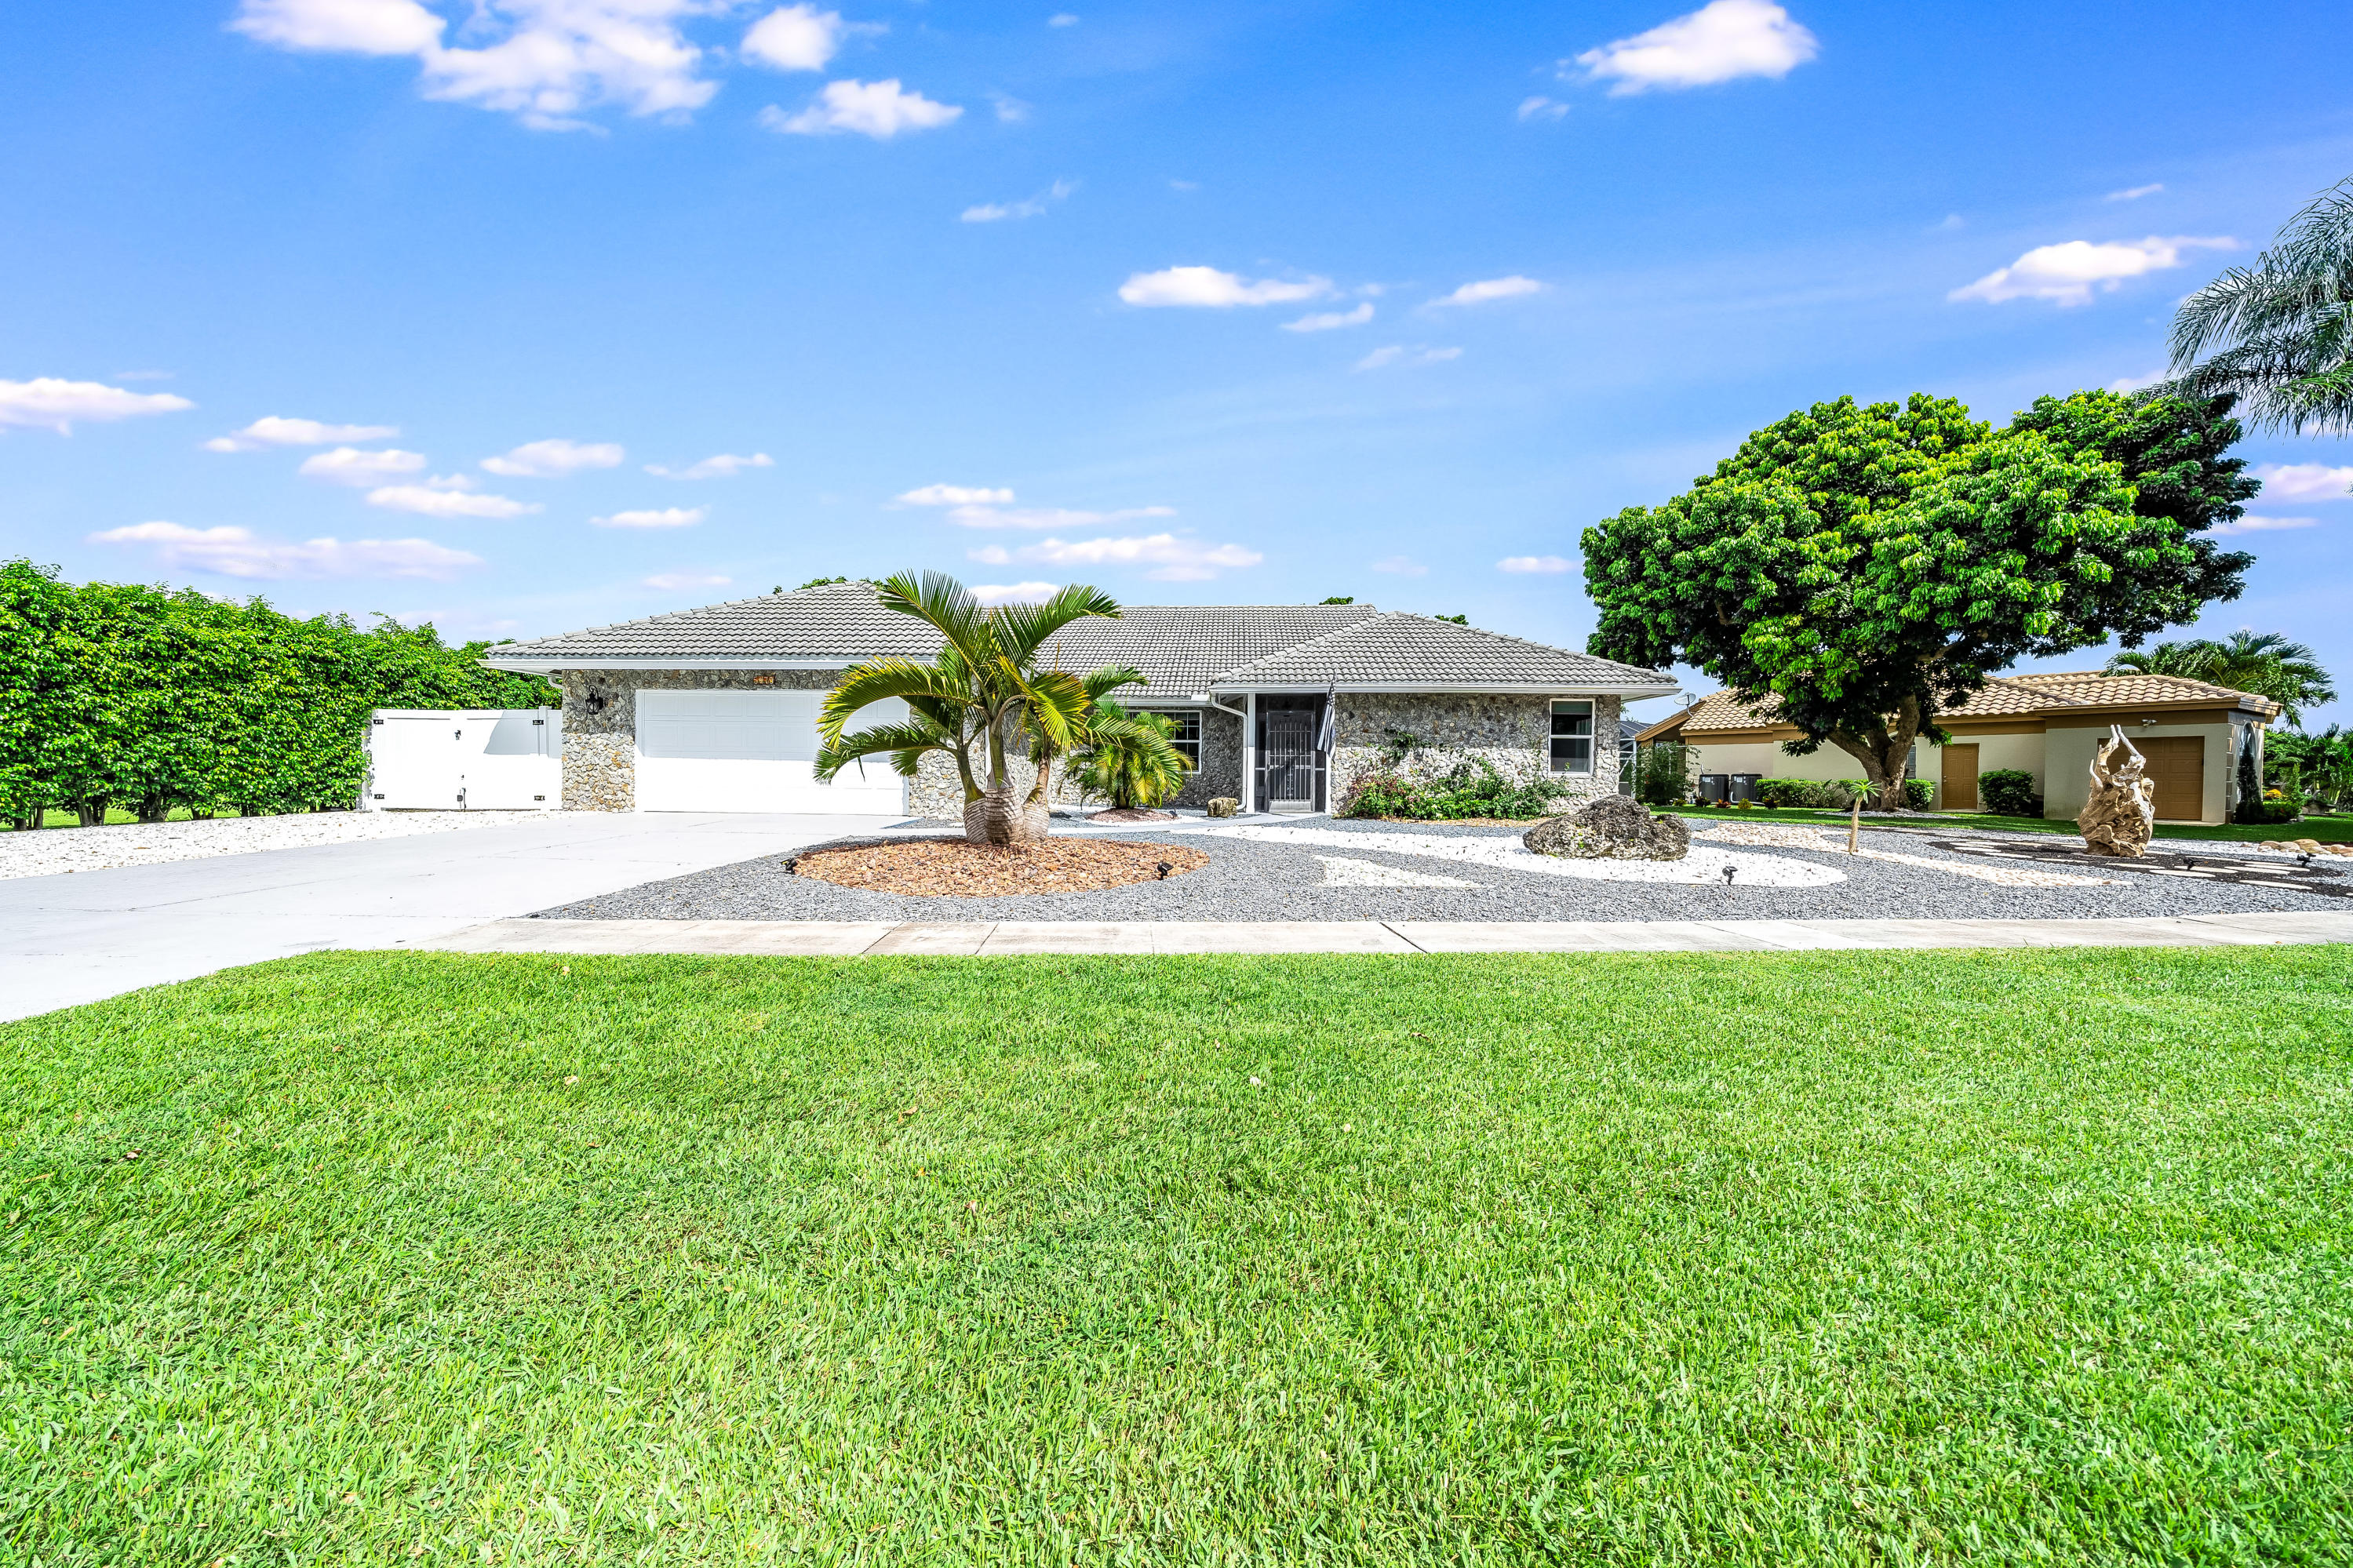 Home for sale in The Estates Boynton Beach Florida